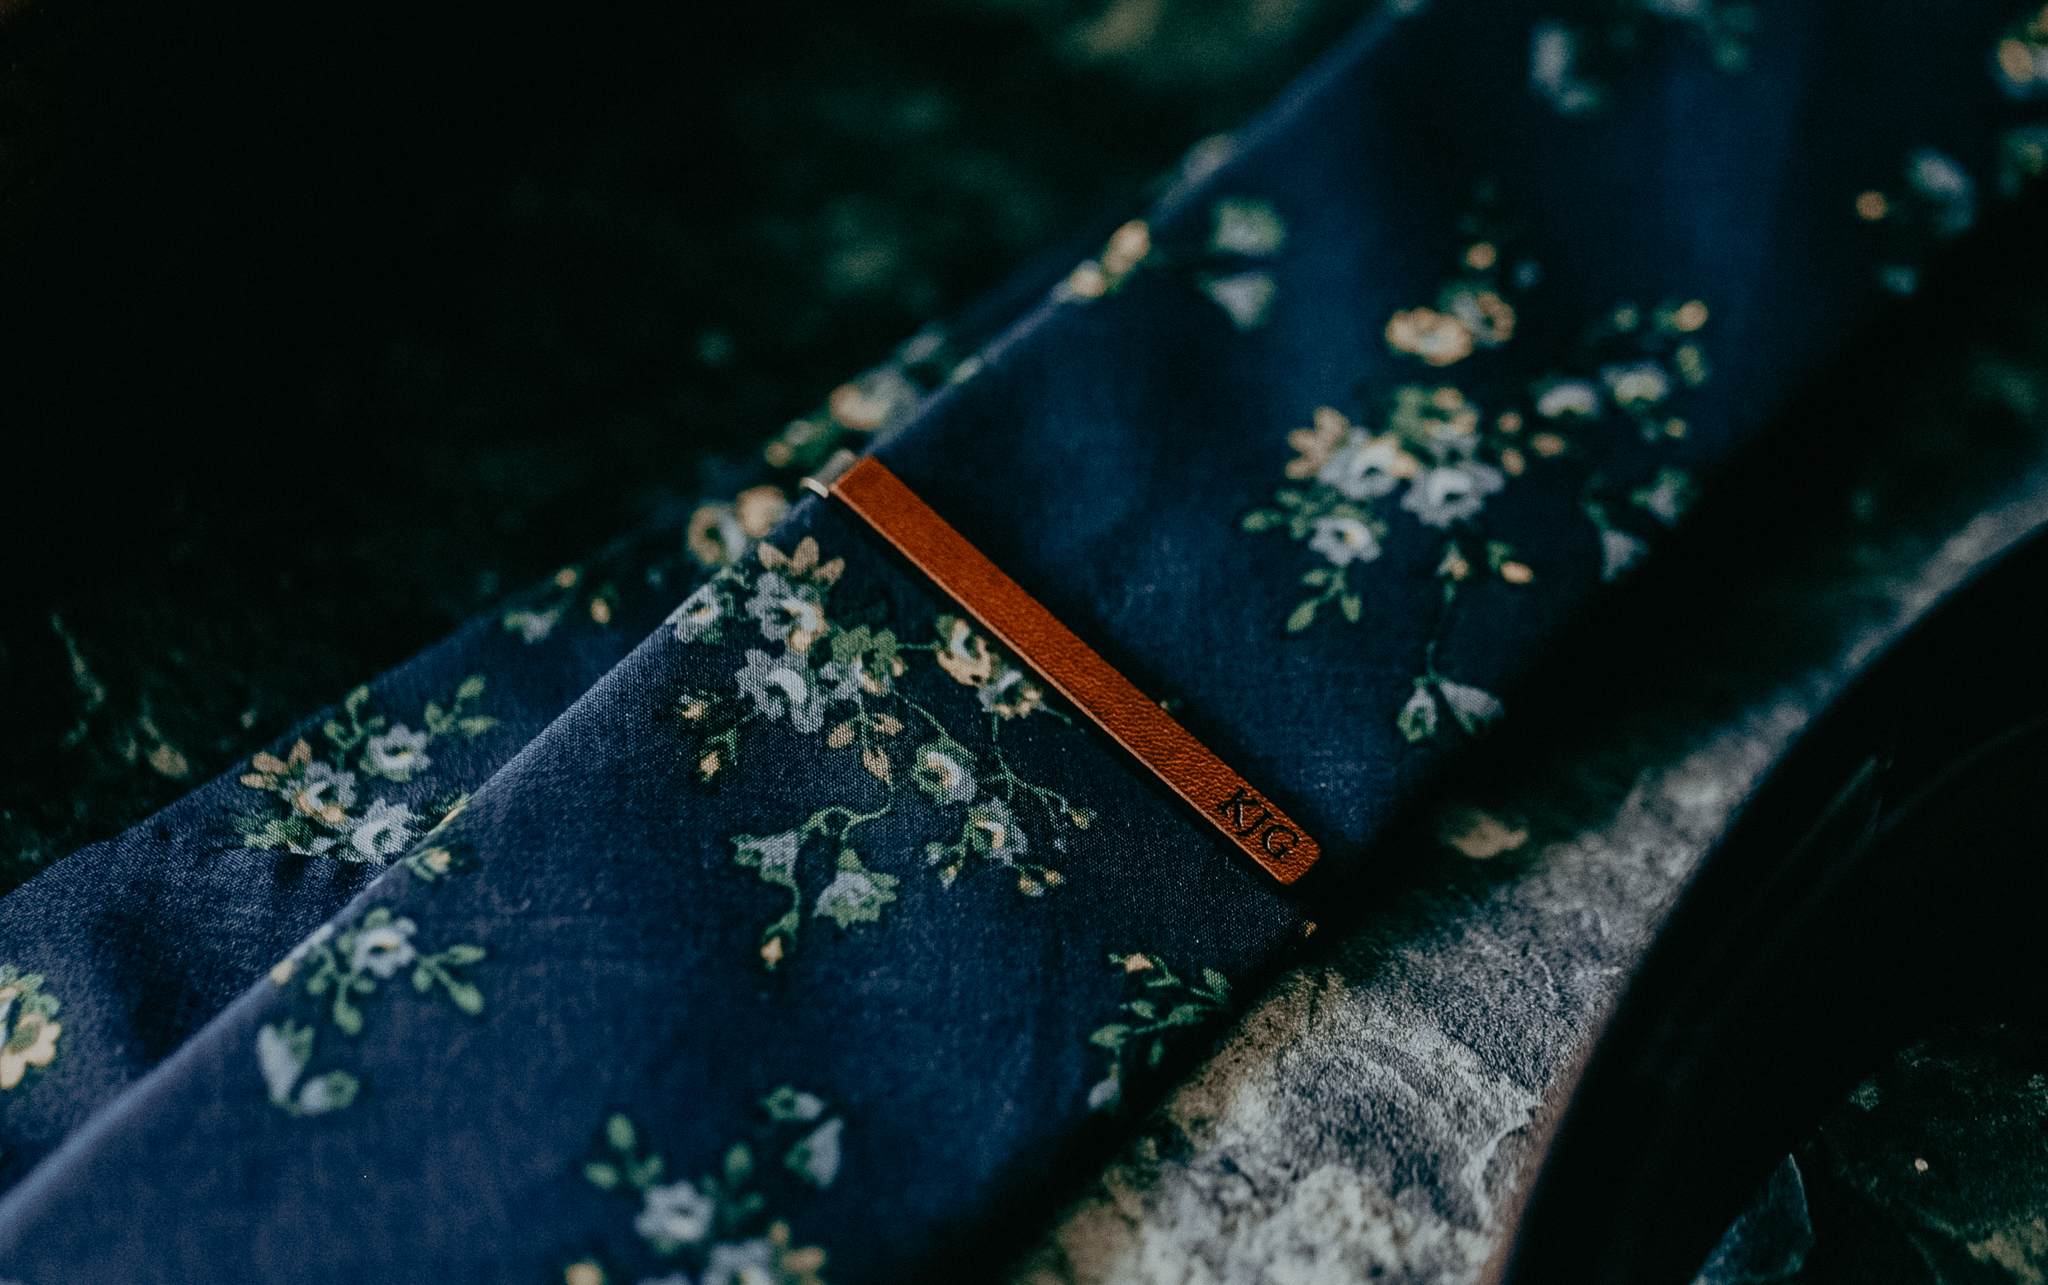 Groom's tie wedding day details